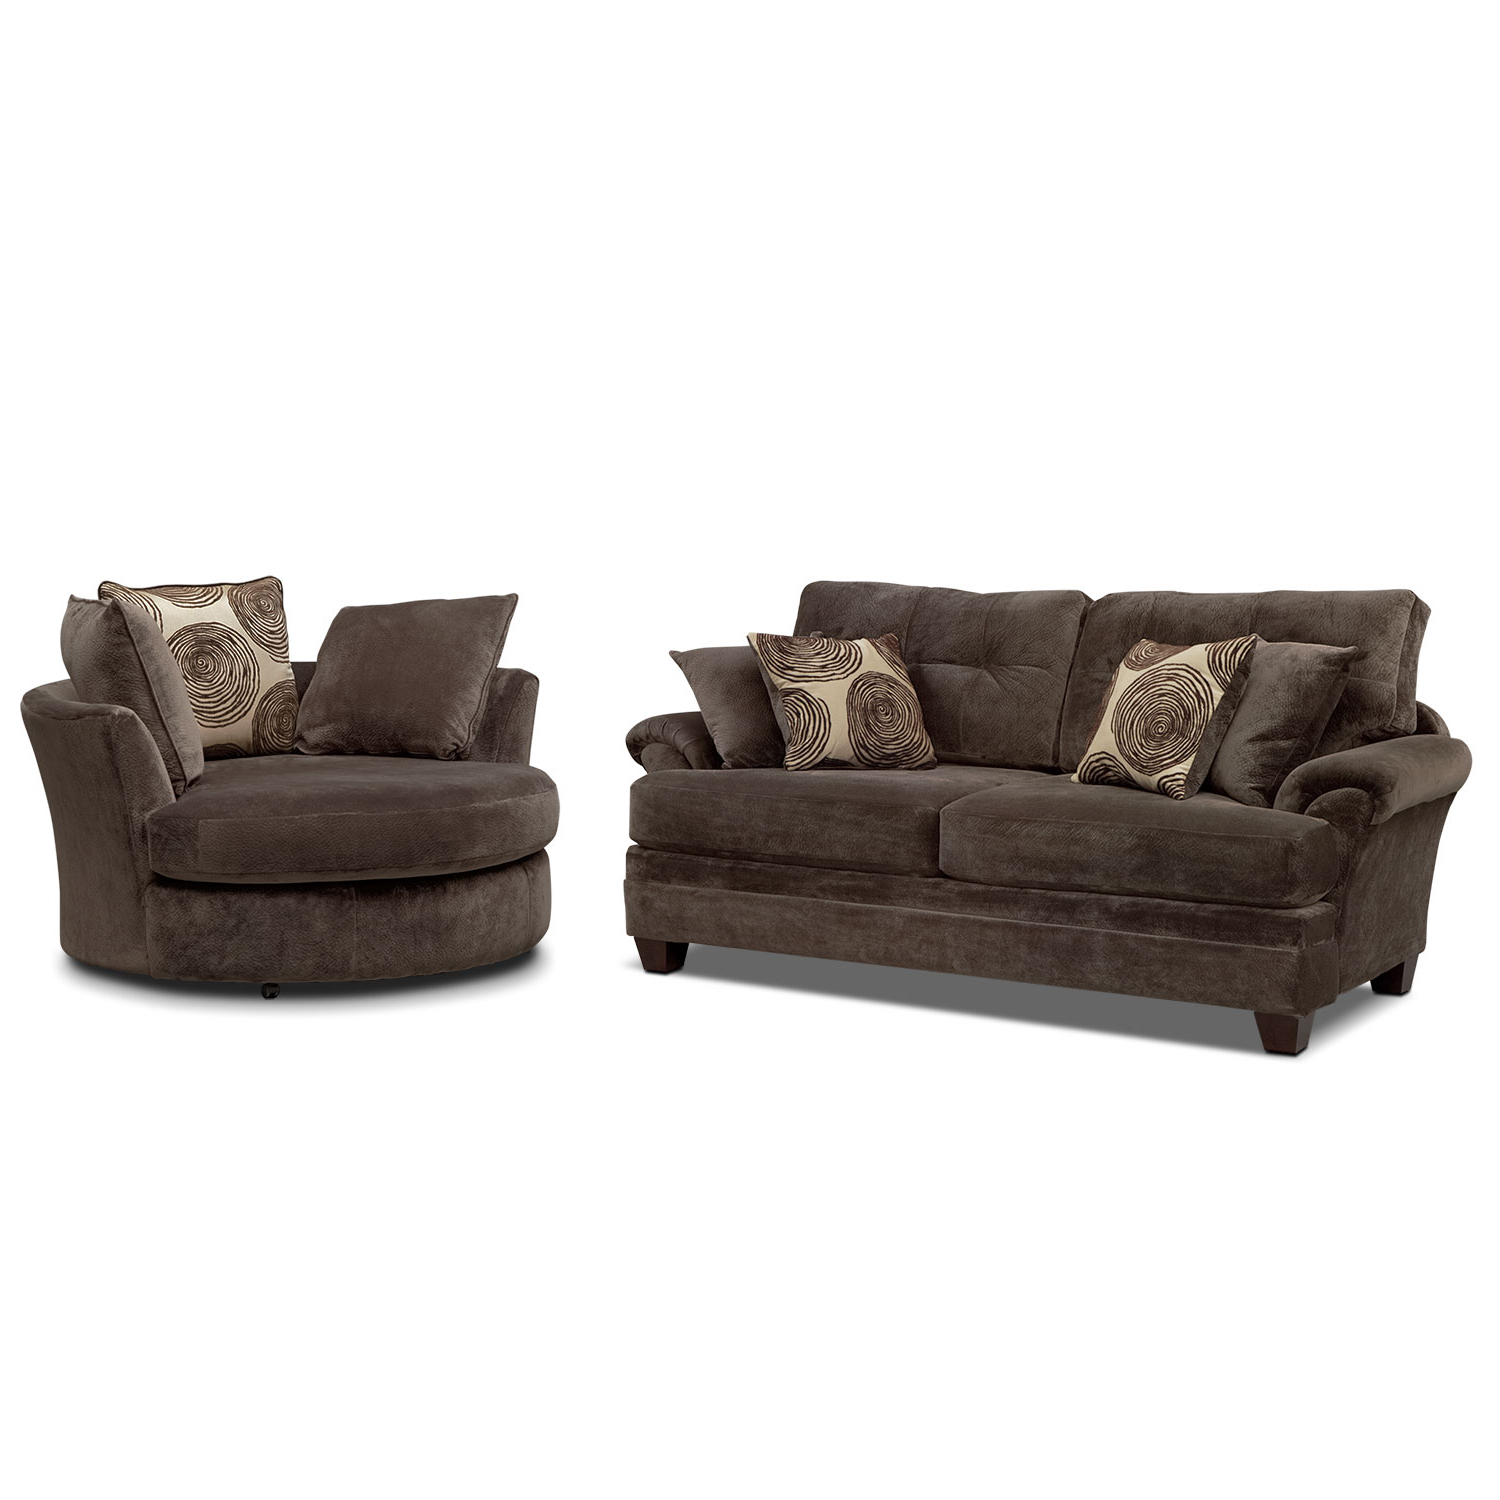 Cordelle Sofa And Swivel Chair Set (Gallery 16 of 20)